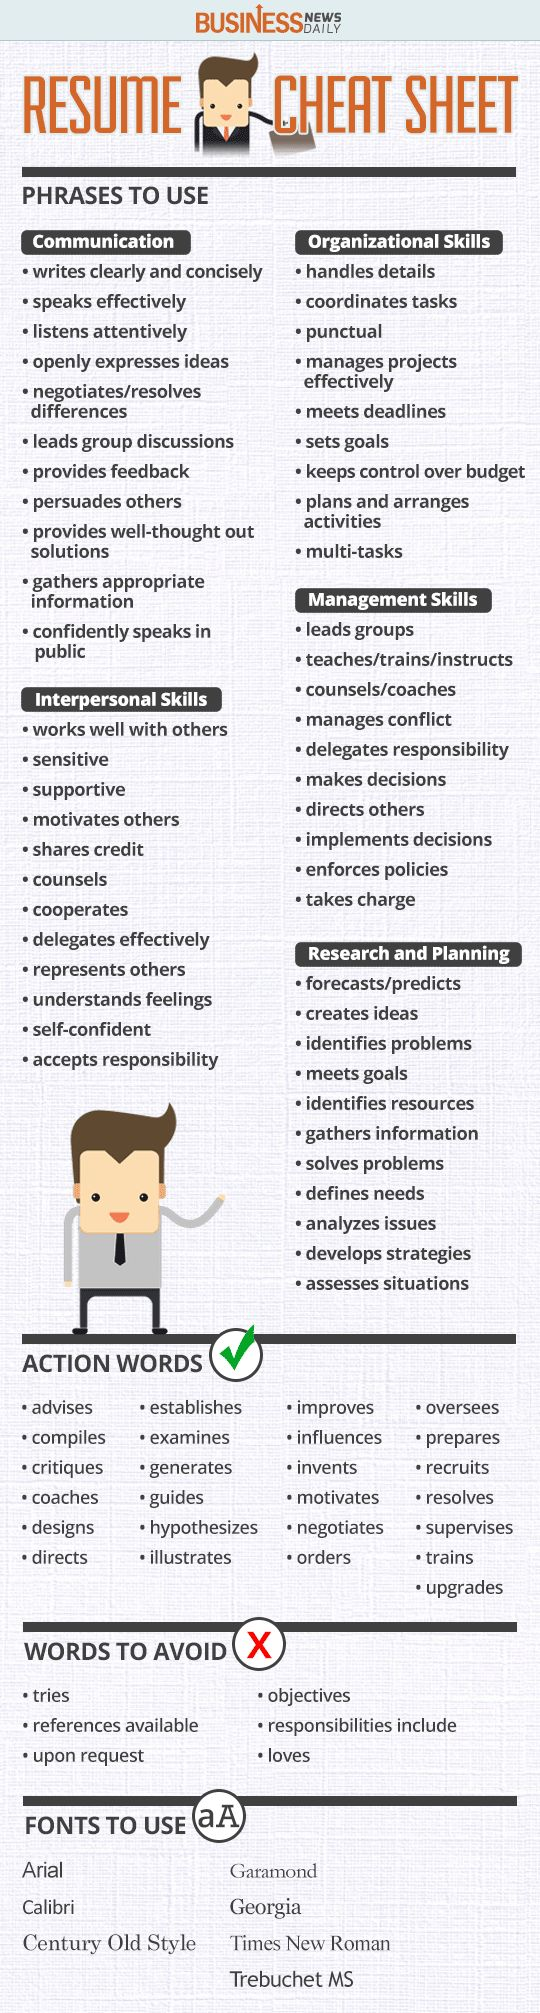 Opposenewapstandardsus  Unique  Ideas About Resume On Pinterest  Cv Format Resume Cv And  With Lovely Resume Cheat Sheet Infographic Andrews Almost Done With A Complete Unit On Employment Which With Comely Create A Resume For Free Also Resume Google Docs In Addition How To Make A Resume For A Highschool Student And Office Resume Templates As Well As Resume For Cashier Additionally Cpa Resume From Pinterestcom With Opposenewapstandardsus  Lovely  Ideas About Resume On Pinterest  Cv Format Resume Cv And  With Comely Resume Cheat Sheet Infographic Andrews Almost Done With A Complete Unit On Employment Which And Unique Create A Resume For Free Also Resume Google Docs In Addition How To Make A Resume For A Highschool Student From Pinterestcom